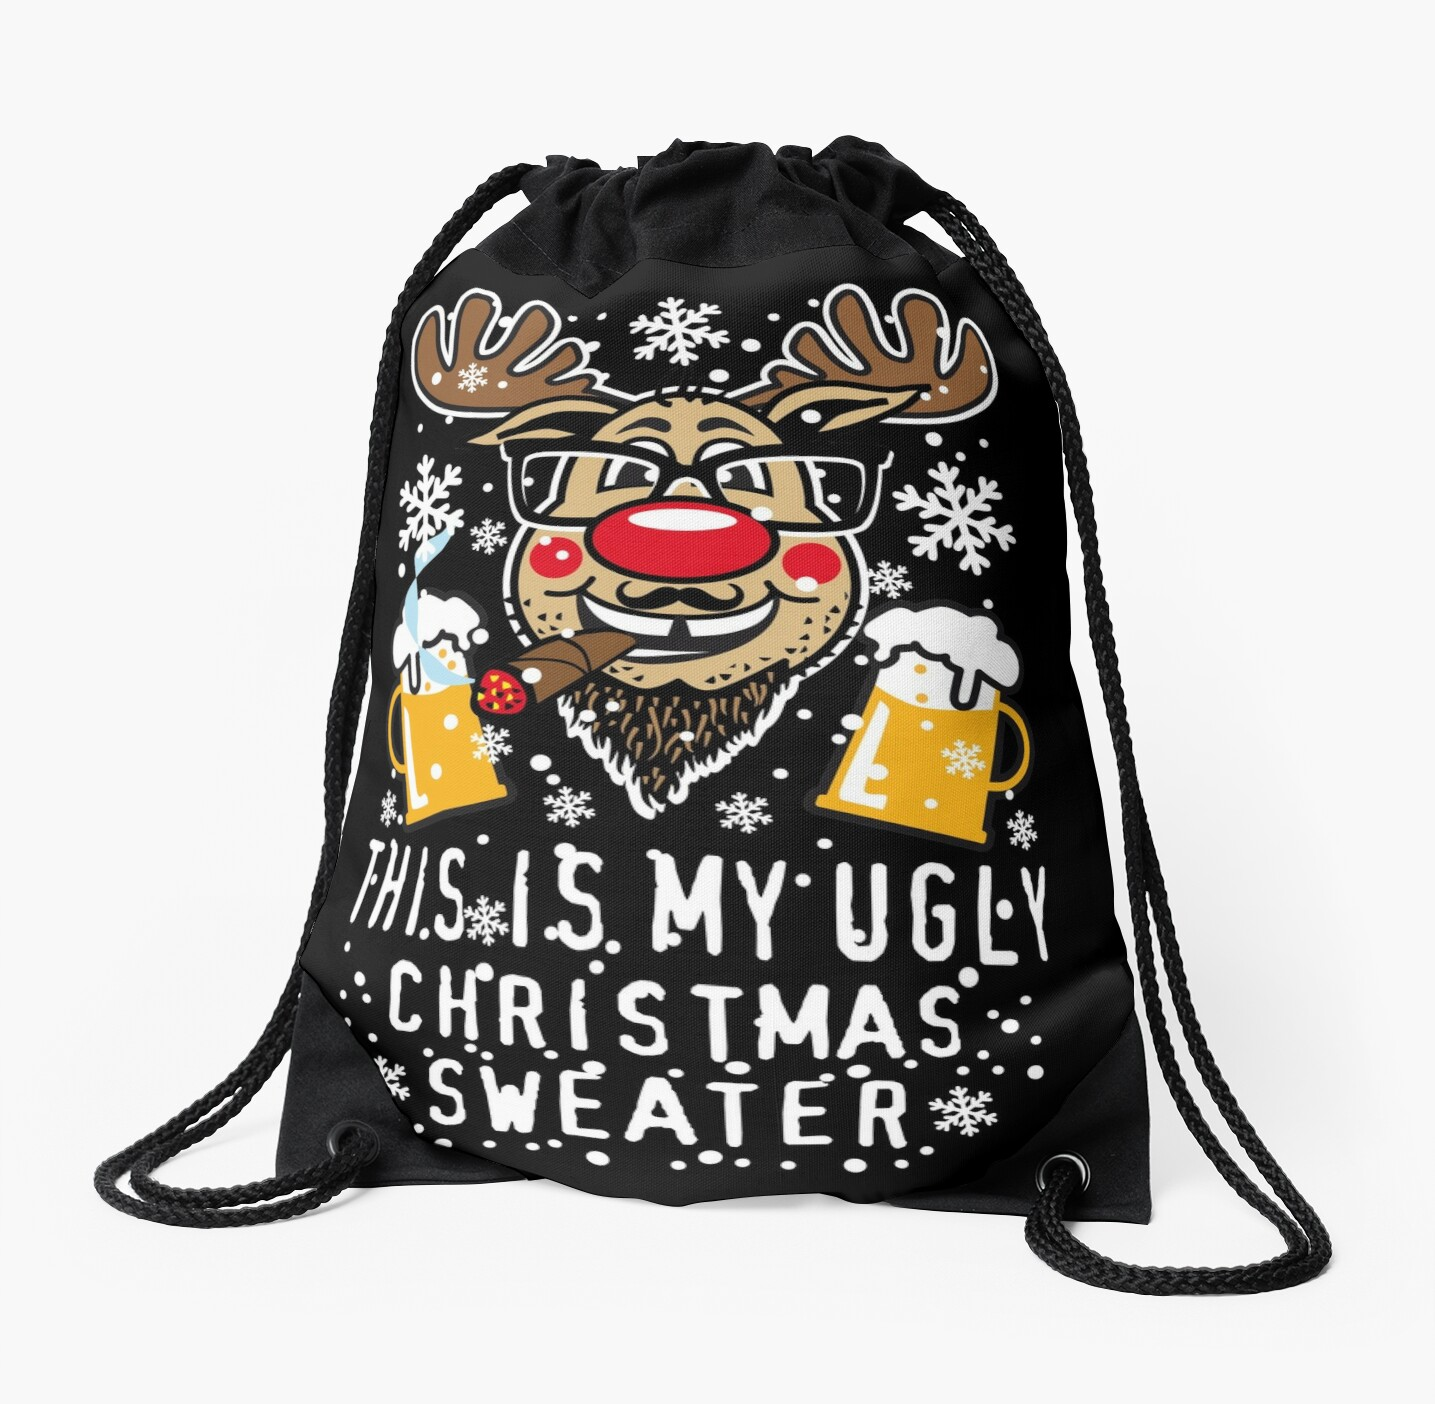 89 reindeer rudolph this is my ugly christmas sweater christmas by margarita art - My Ugly Christmas Sweater